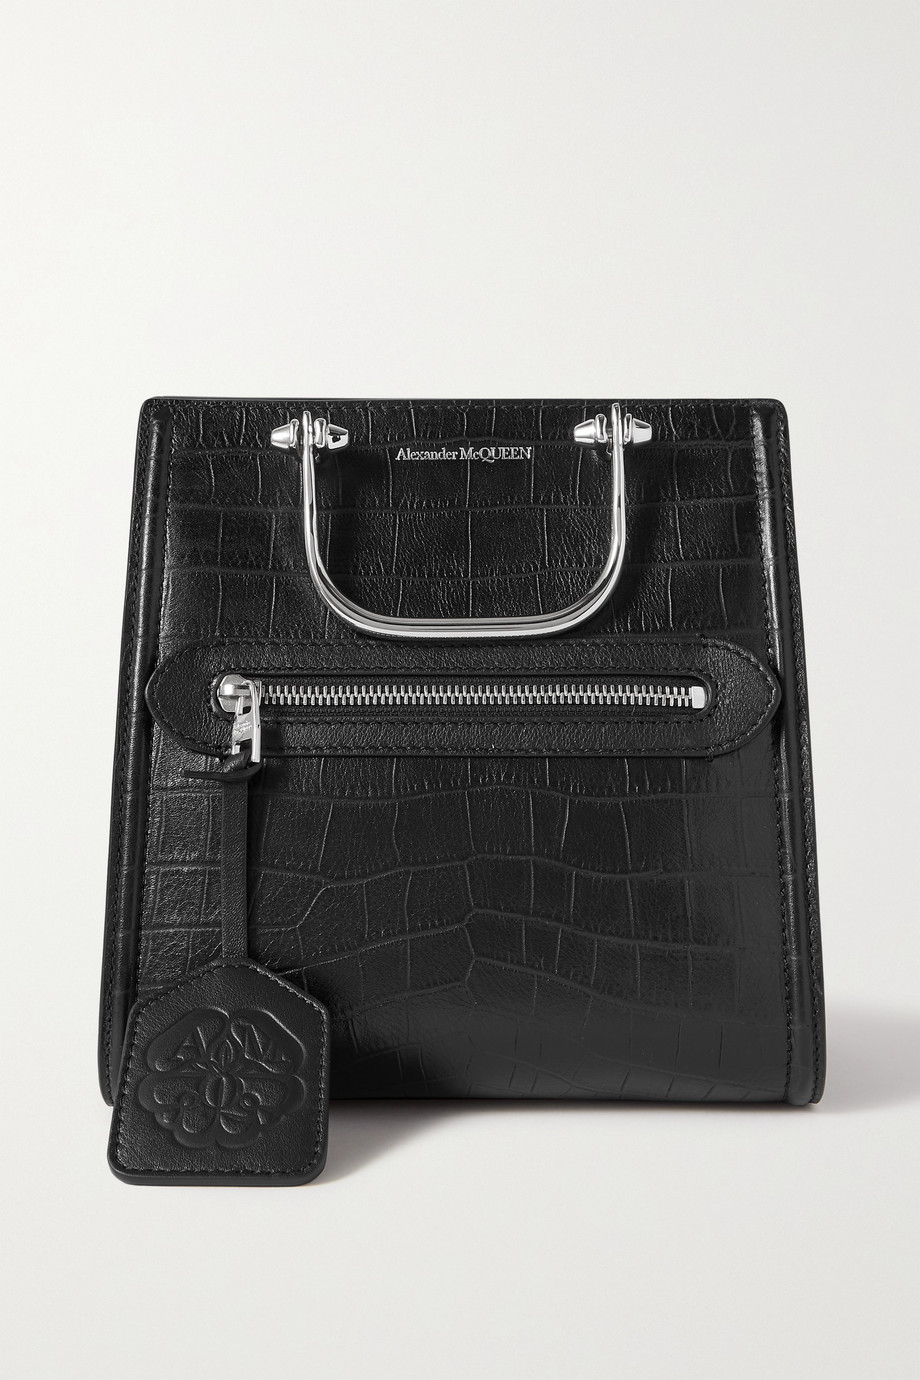 Alexander McQueen The Short Story small croc-effect leather tote